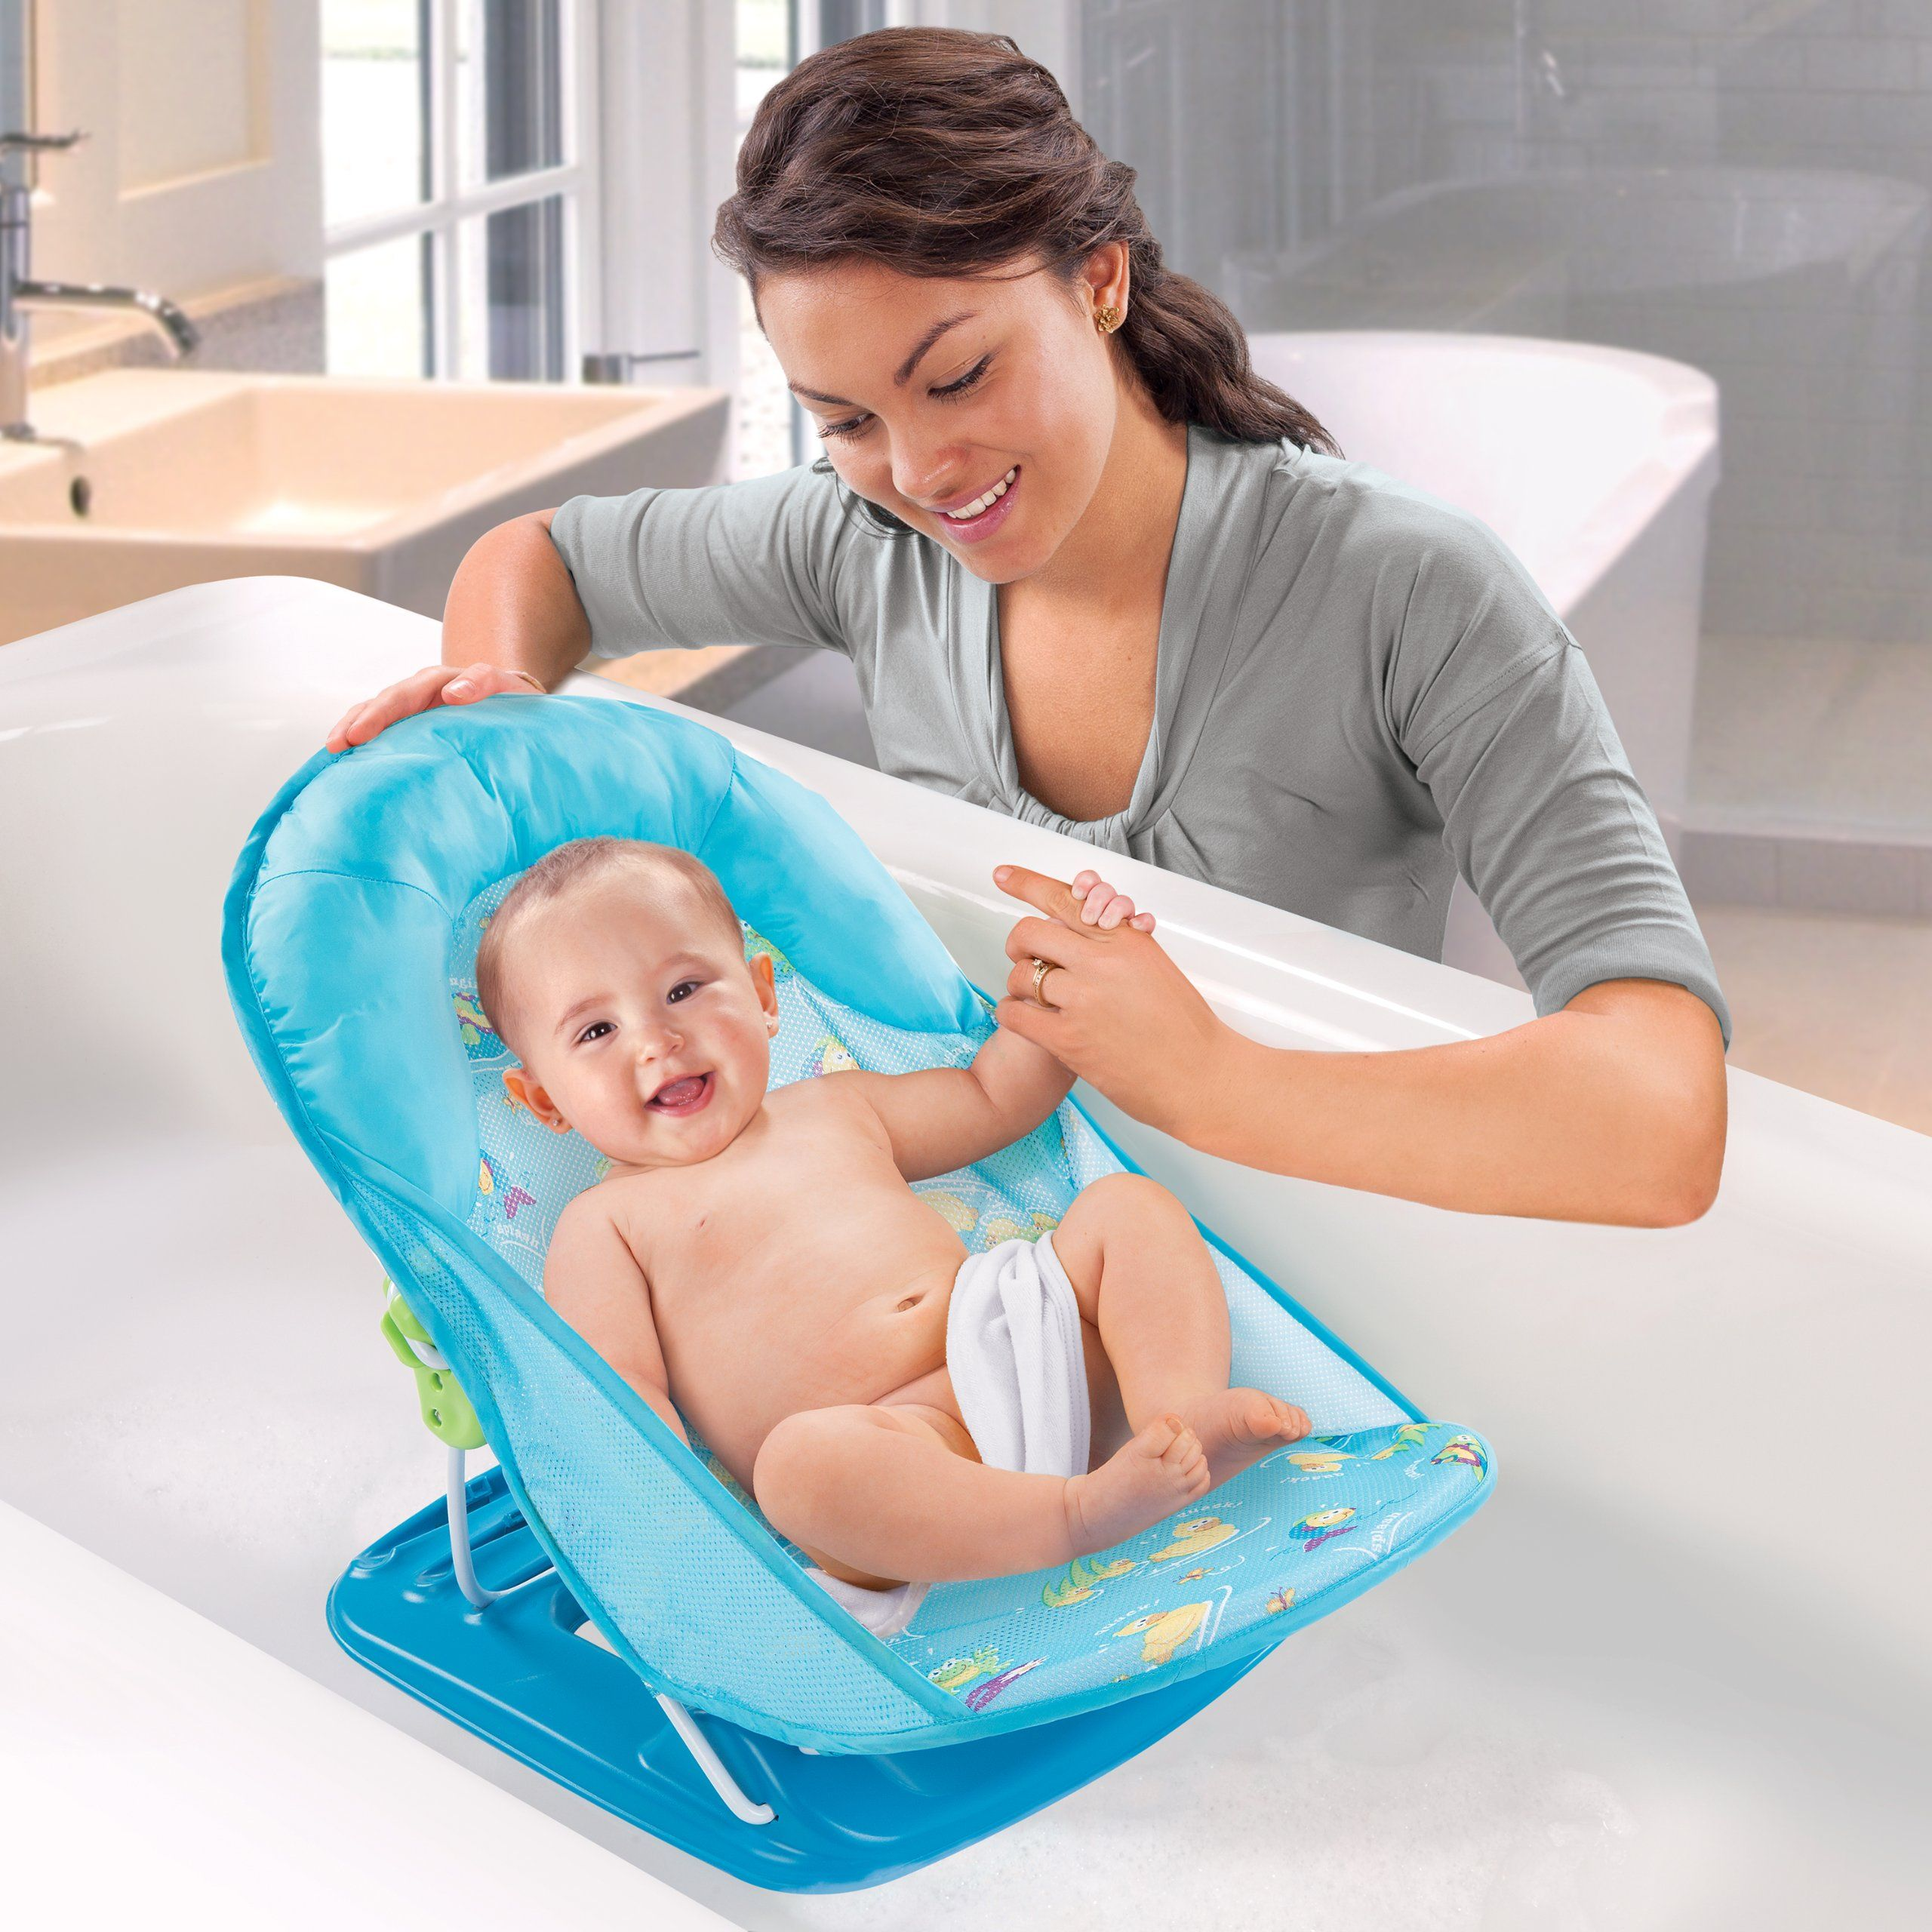 Amazon.com : Summer Infant Mother\'s Touch Deluxe Baby Bather, Blue ...